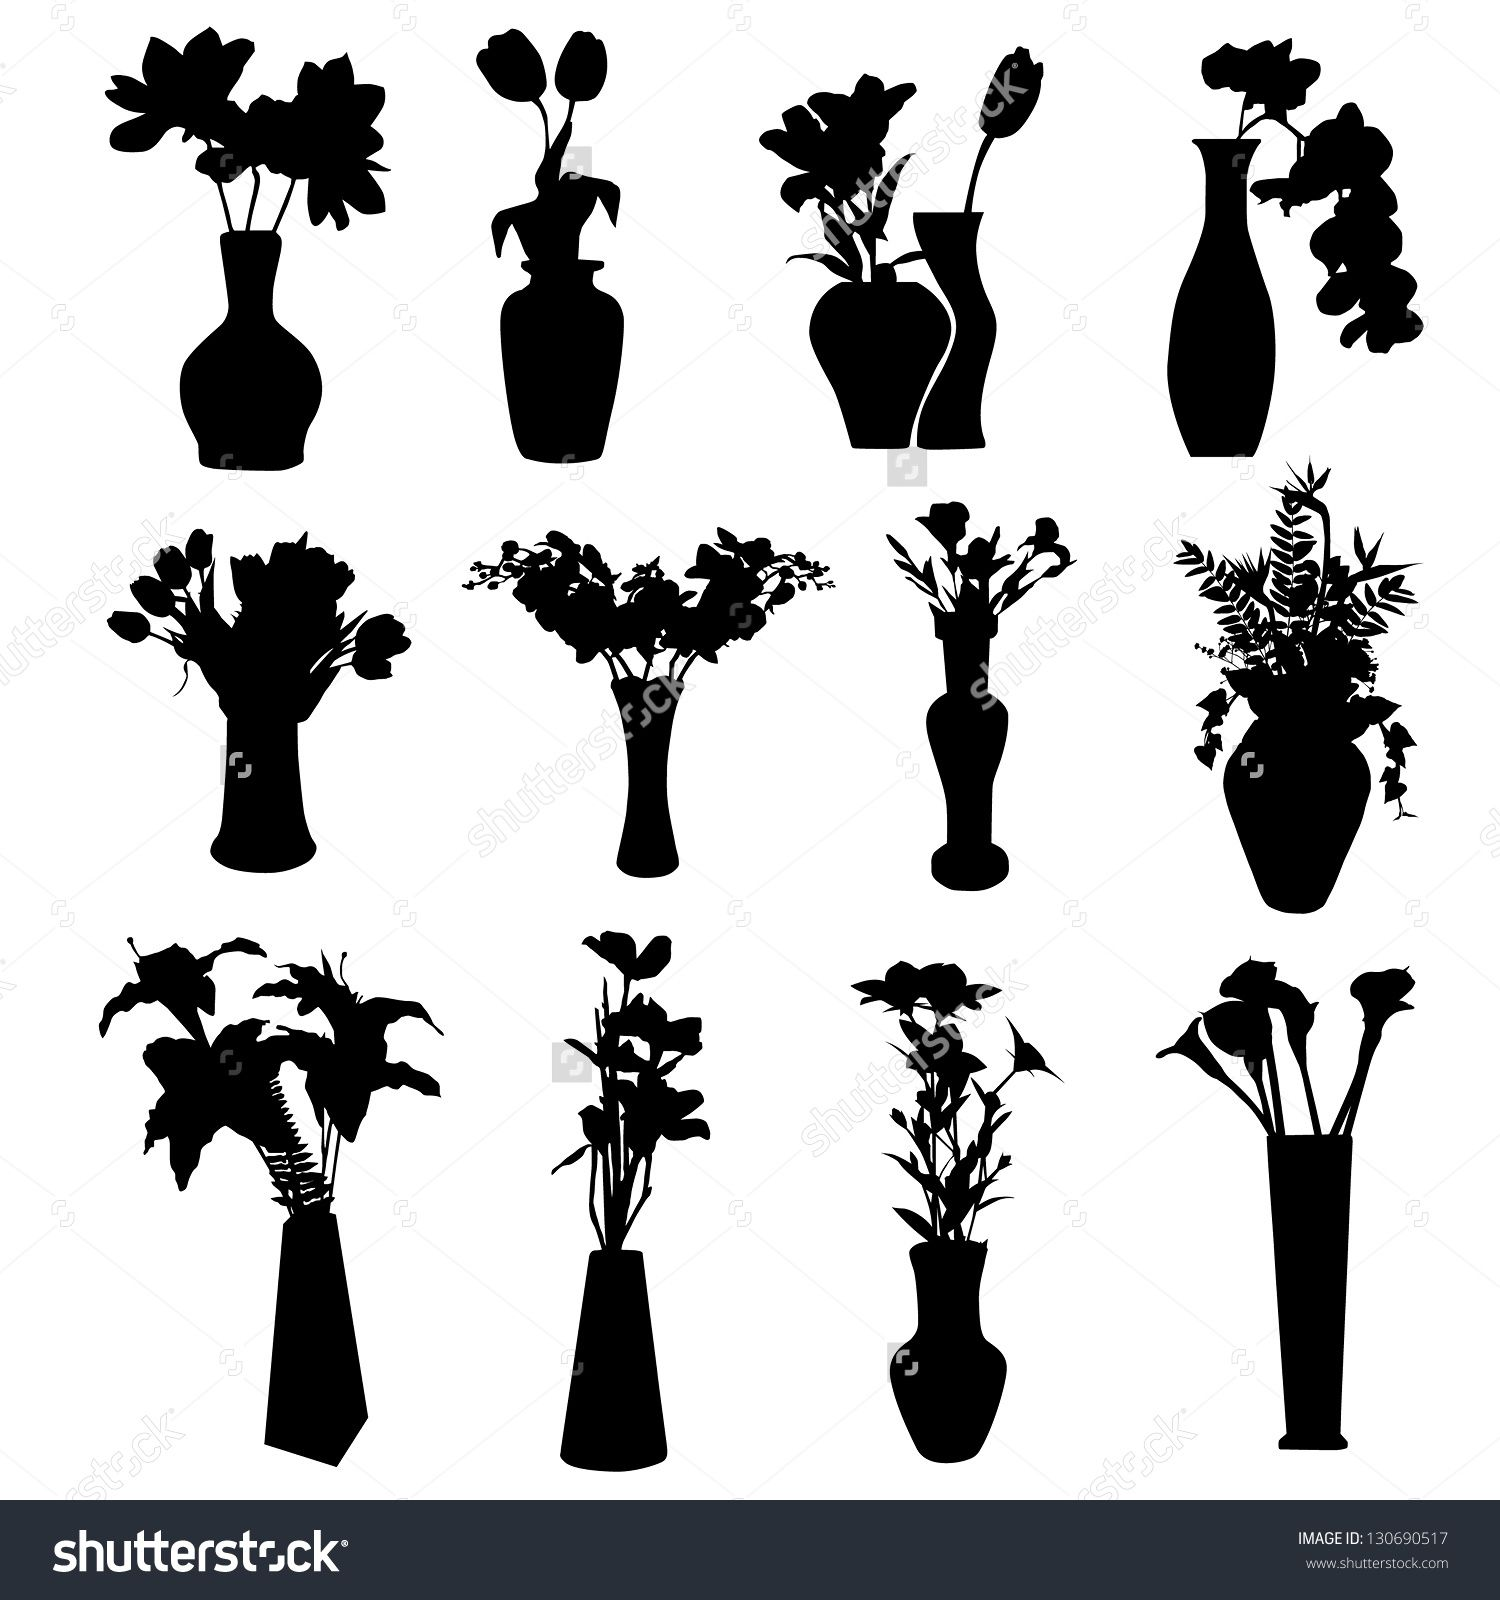 Stock vector flowers in vase collection silhouettes isolated stock vector flowers in vase collection silhouettes isolated reviewsmspy